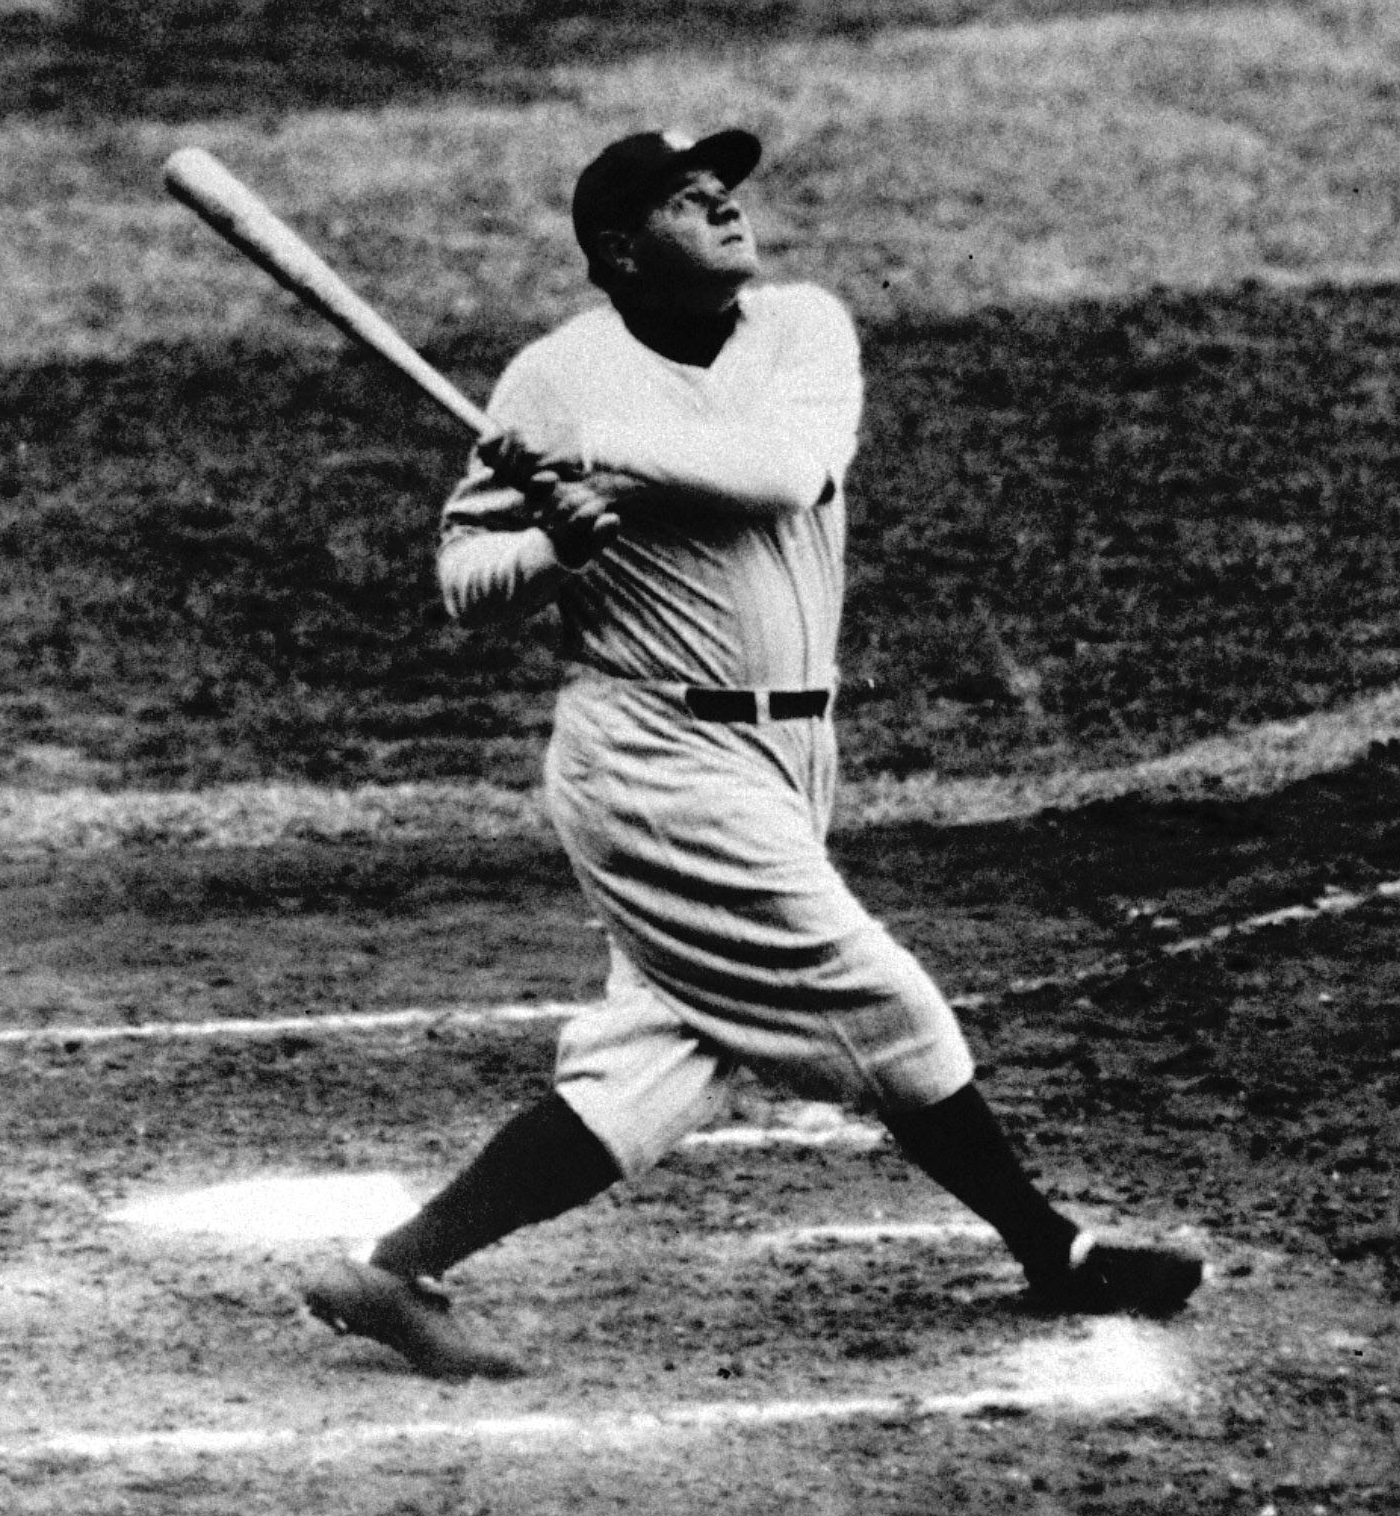 Babe Ruth's career numbers look likethis: Babe Ruth Yankees